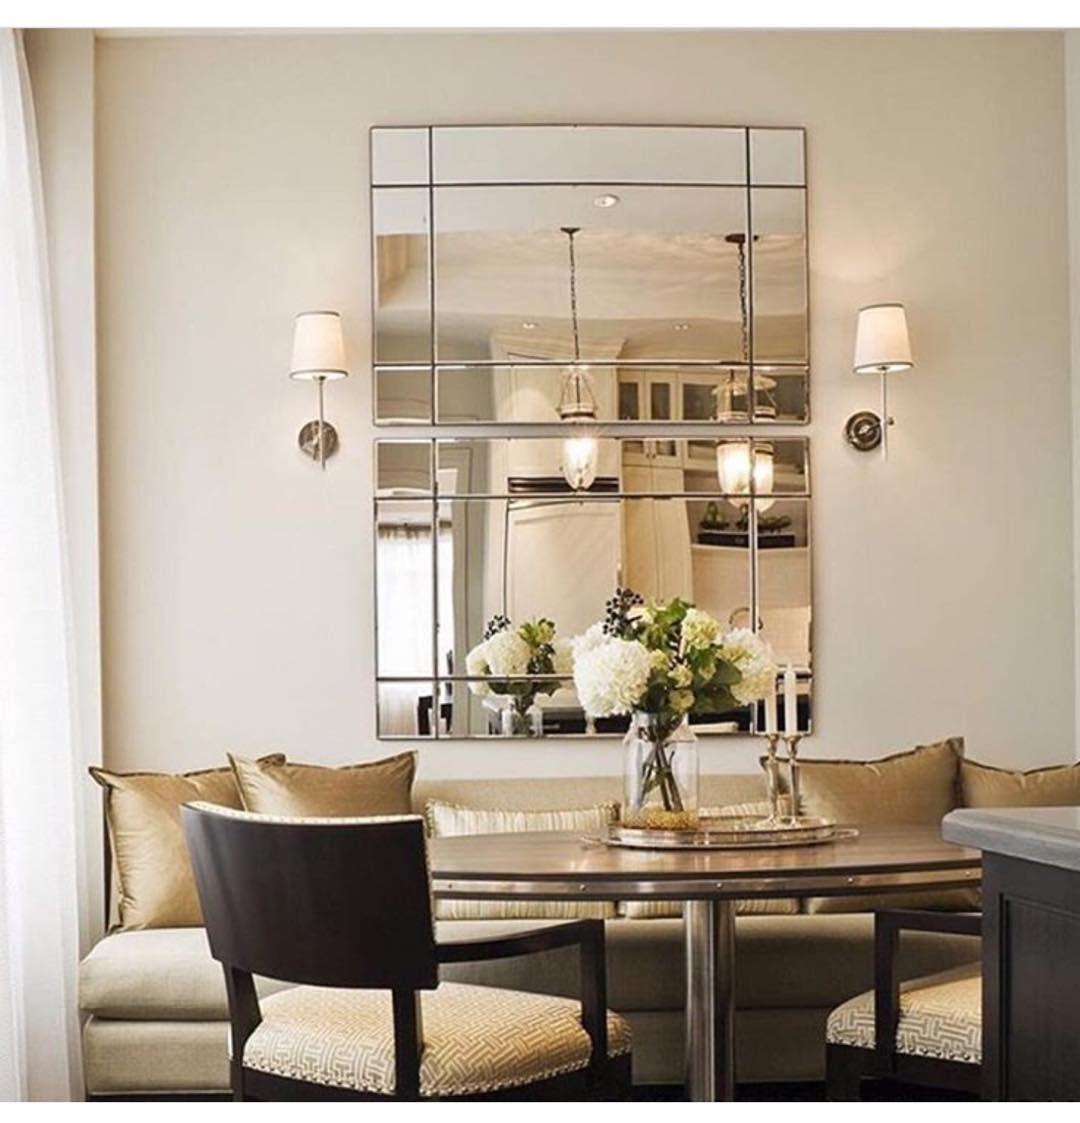 Brian Gluckstein On Instagram I Love Using A Banquette In A Kitchen It Uses Less Space And Is A Great Place To Hang Out Decoración De Unas Comentarios